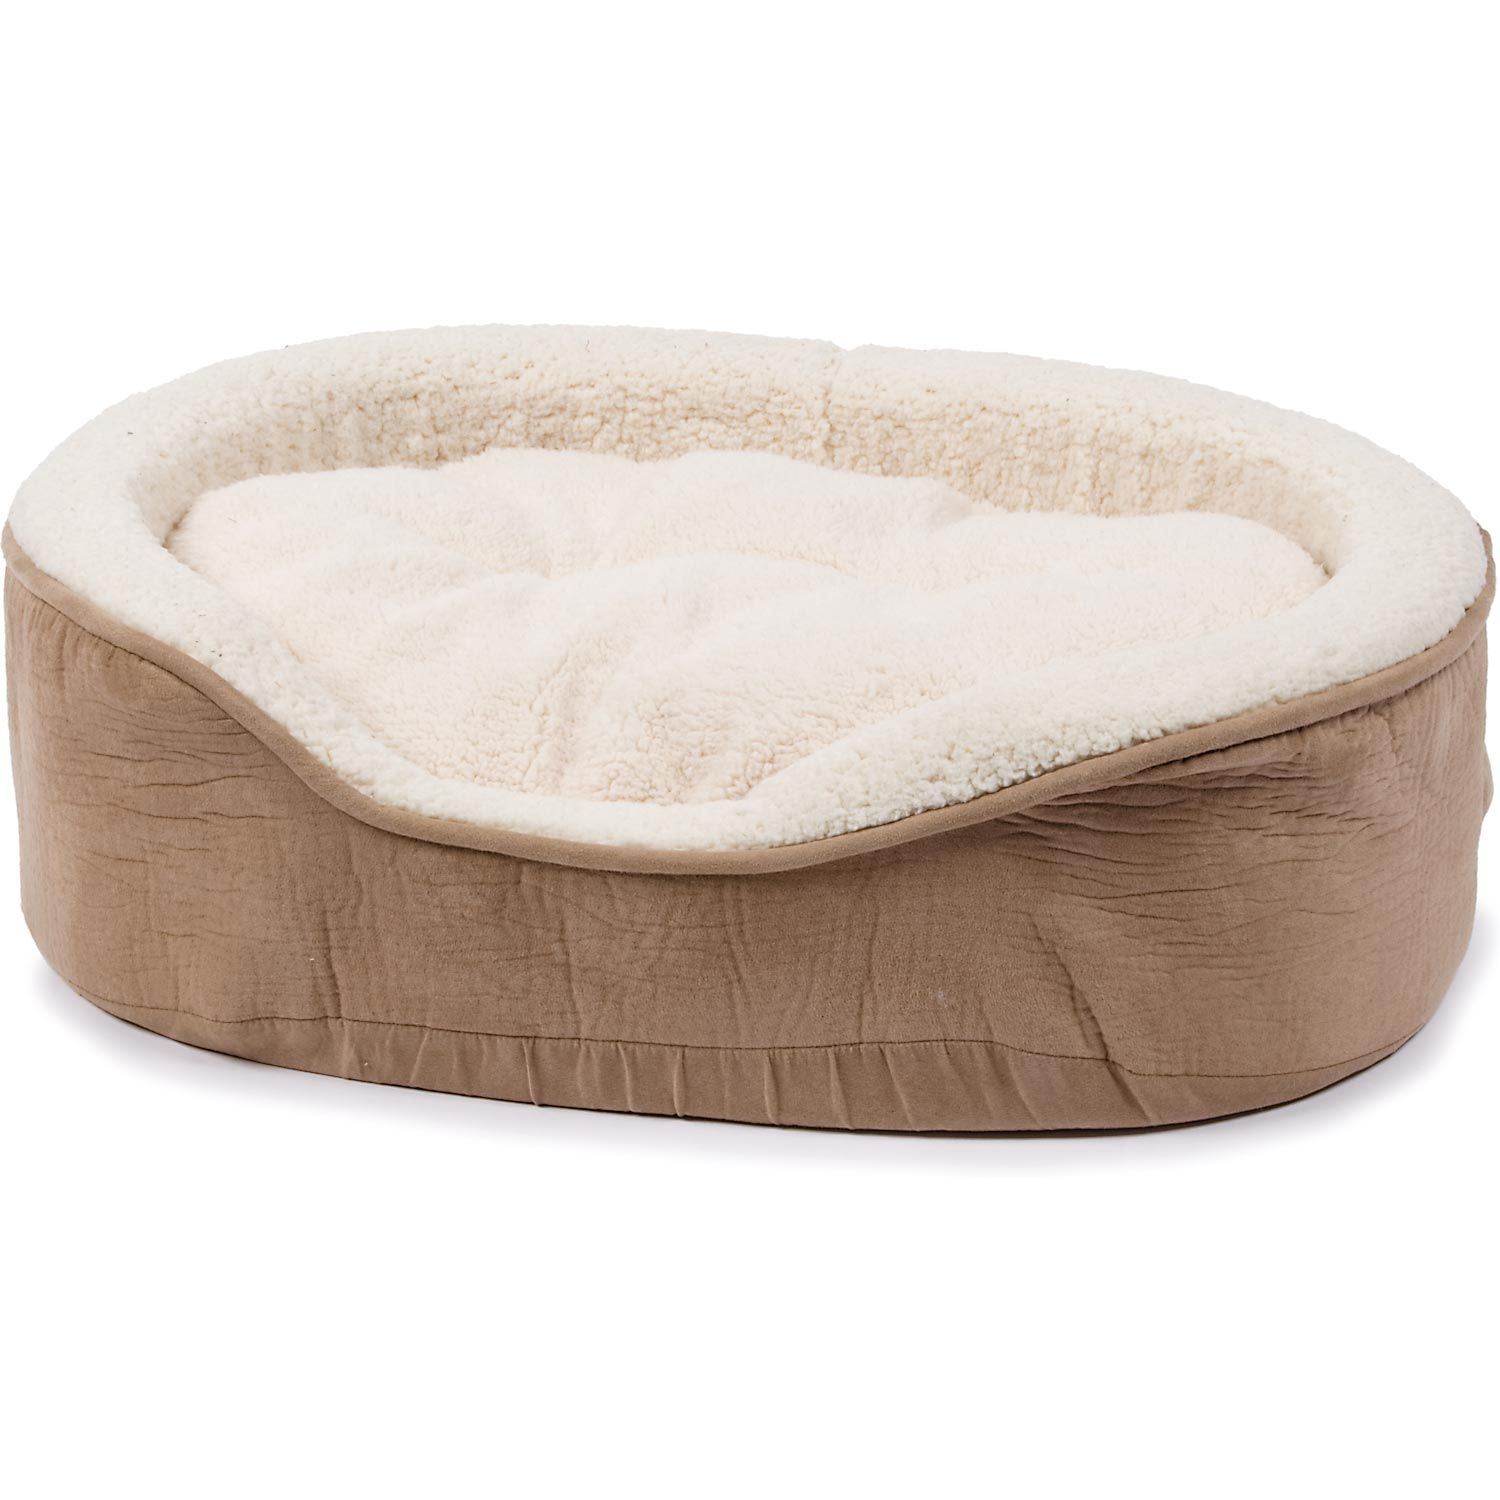 Petco Oval Tan and Cream Lounger Dog Bed Perfect for a